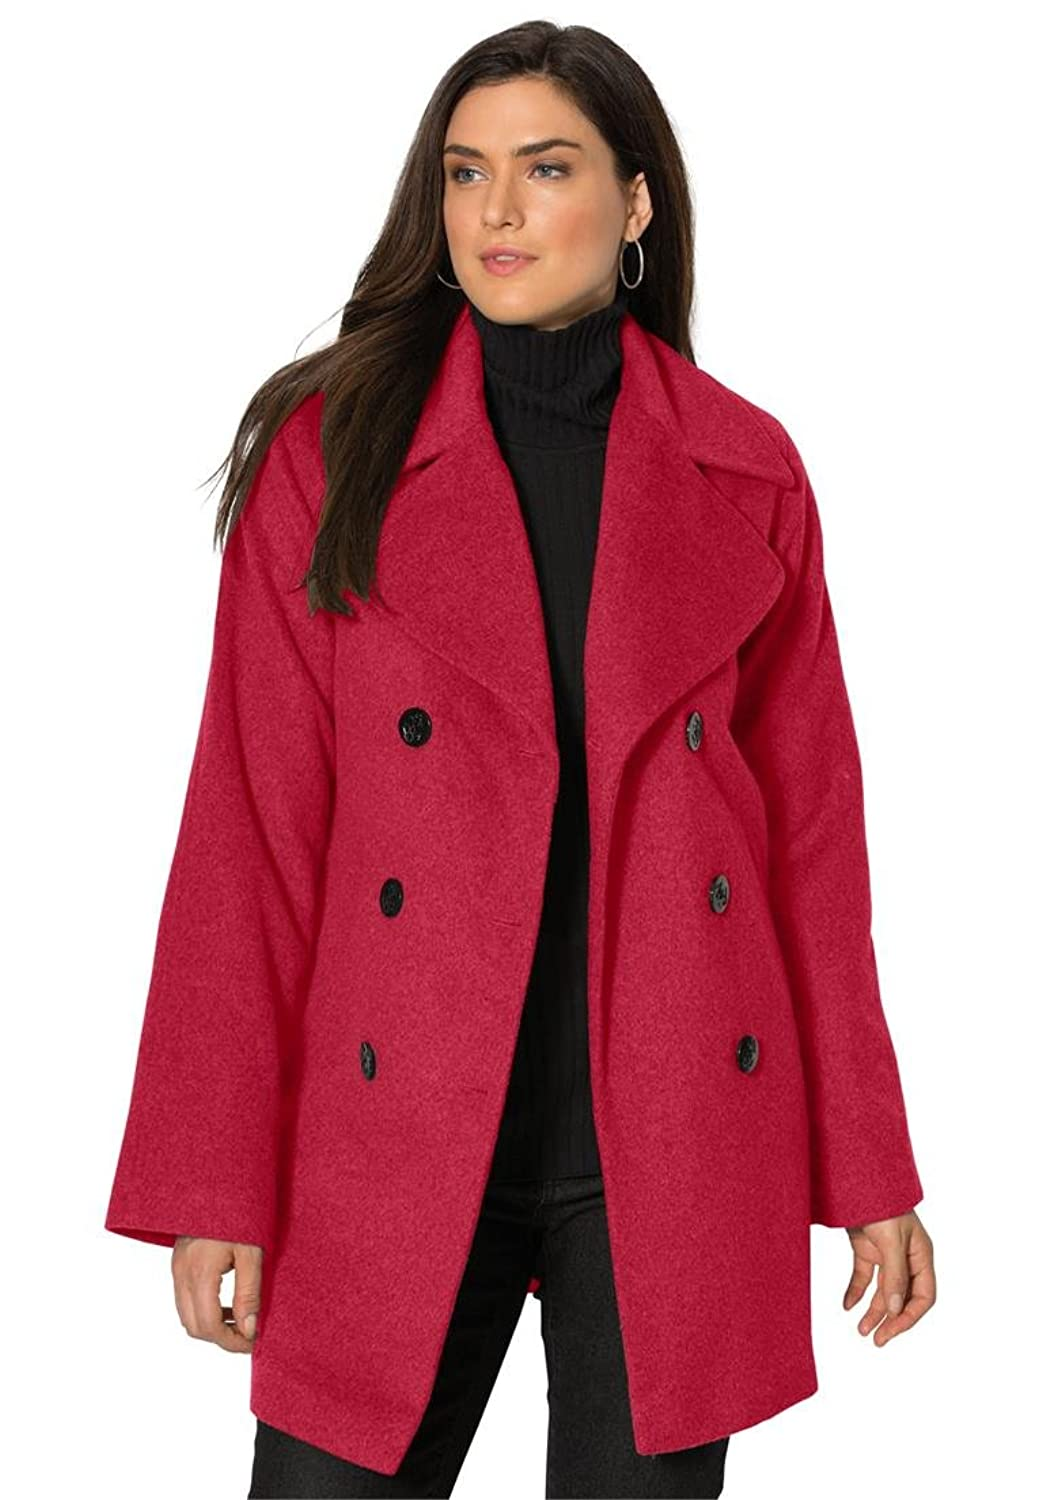 Jessica London Women's Plus Size Tall Classic Double Breasted Wool Coat